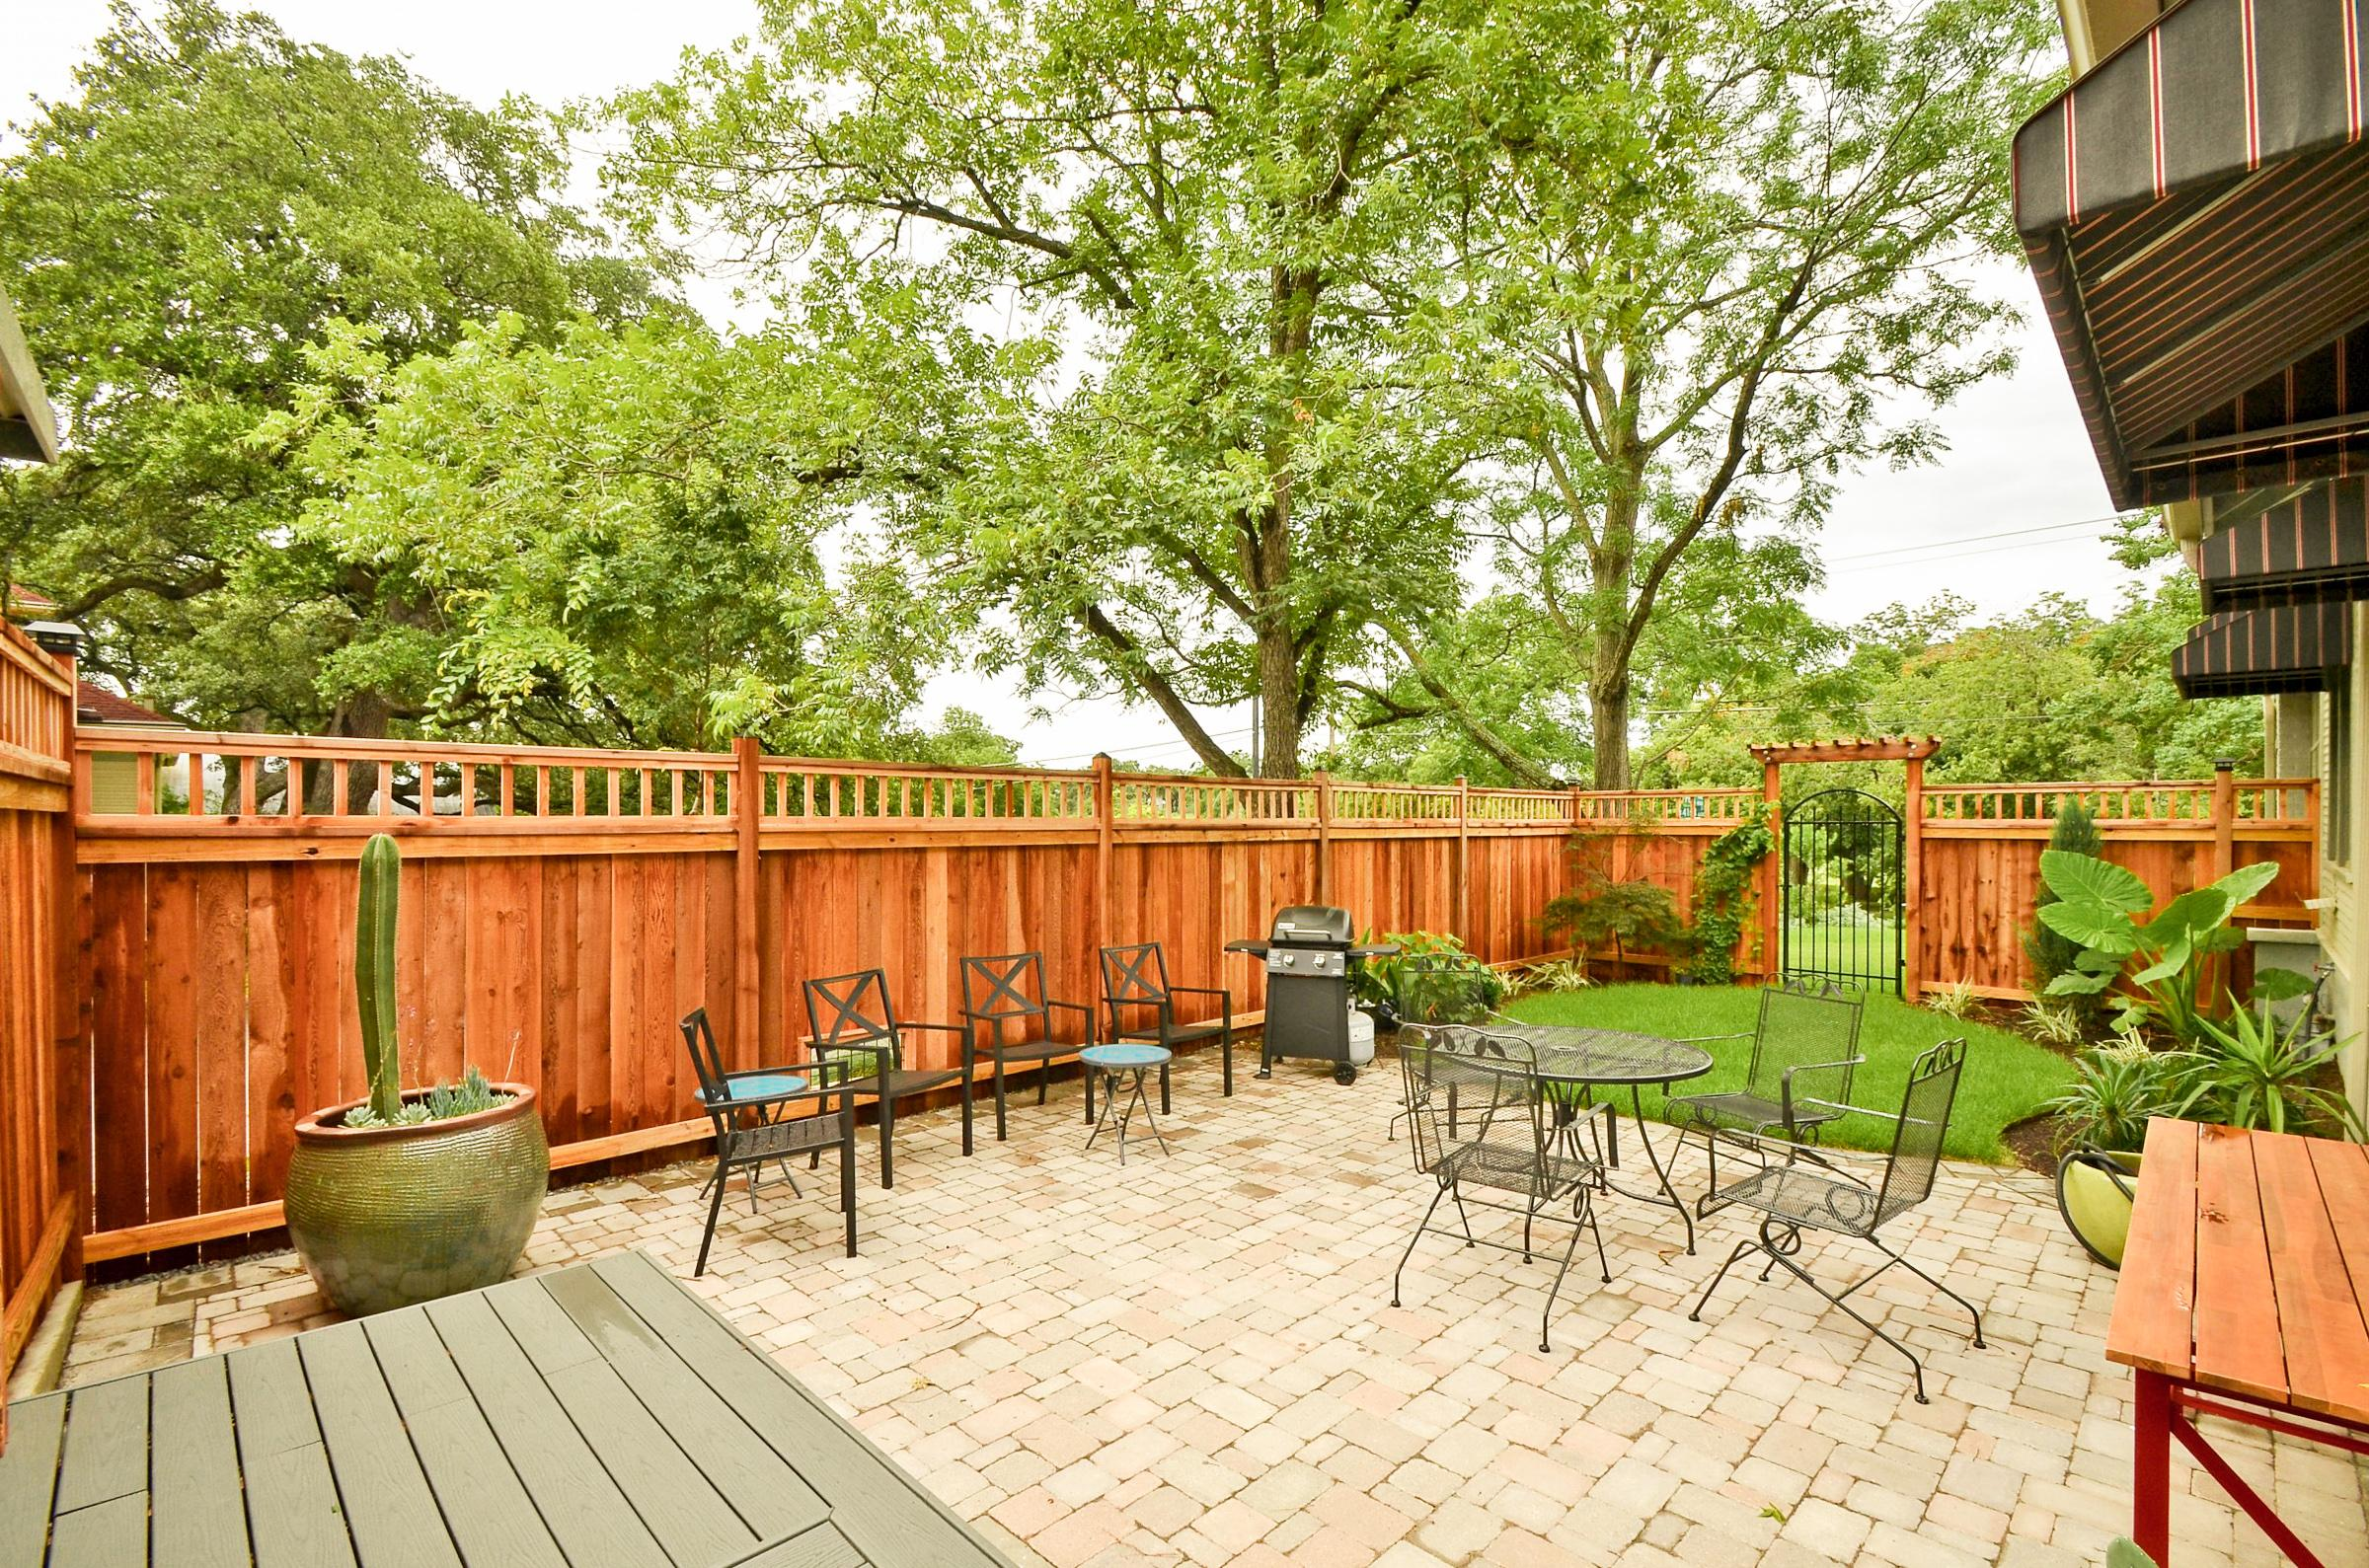 Welcome to Austin! The backyard of this home is the perfect place to sit outside and bask in the amazing Texas sunshine.